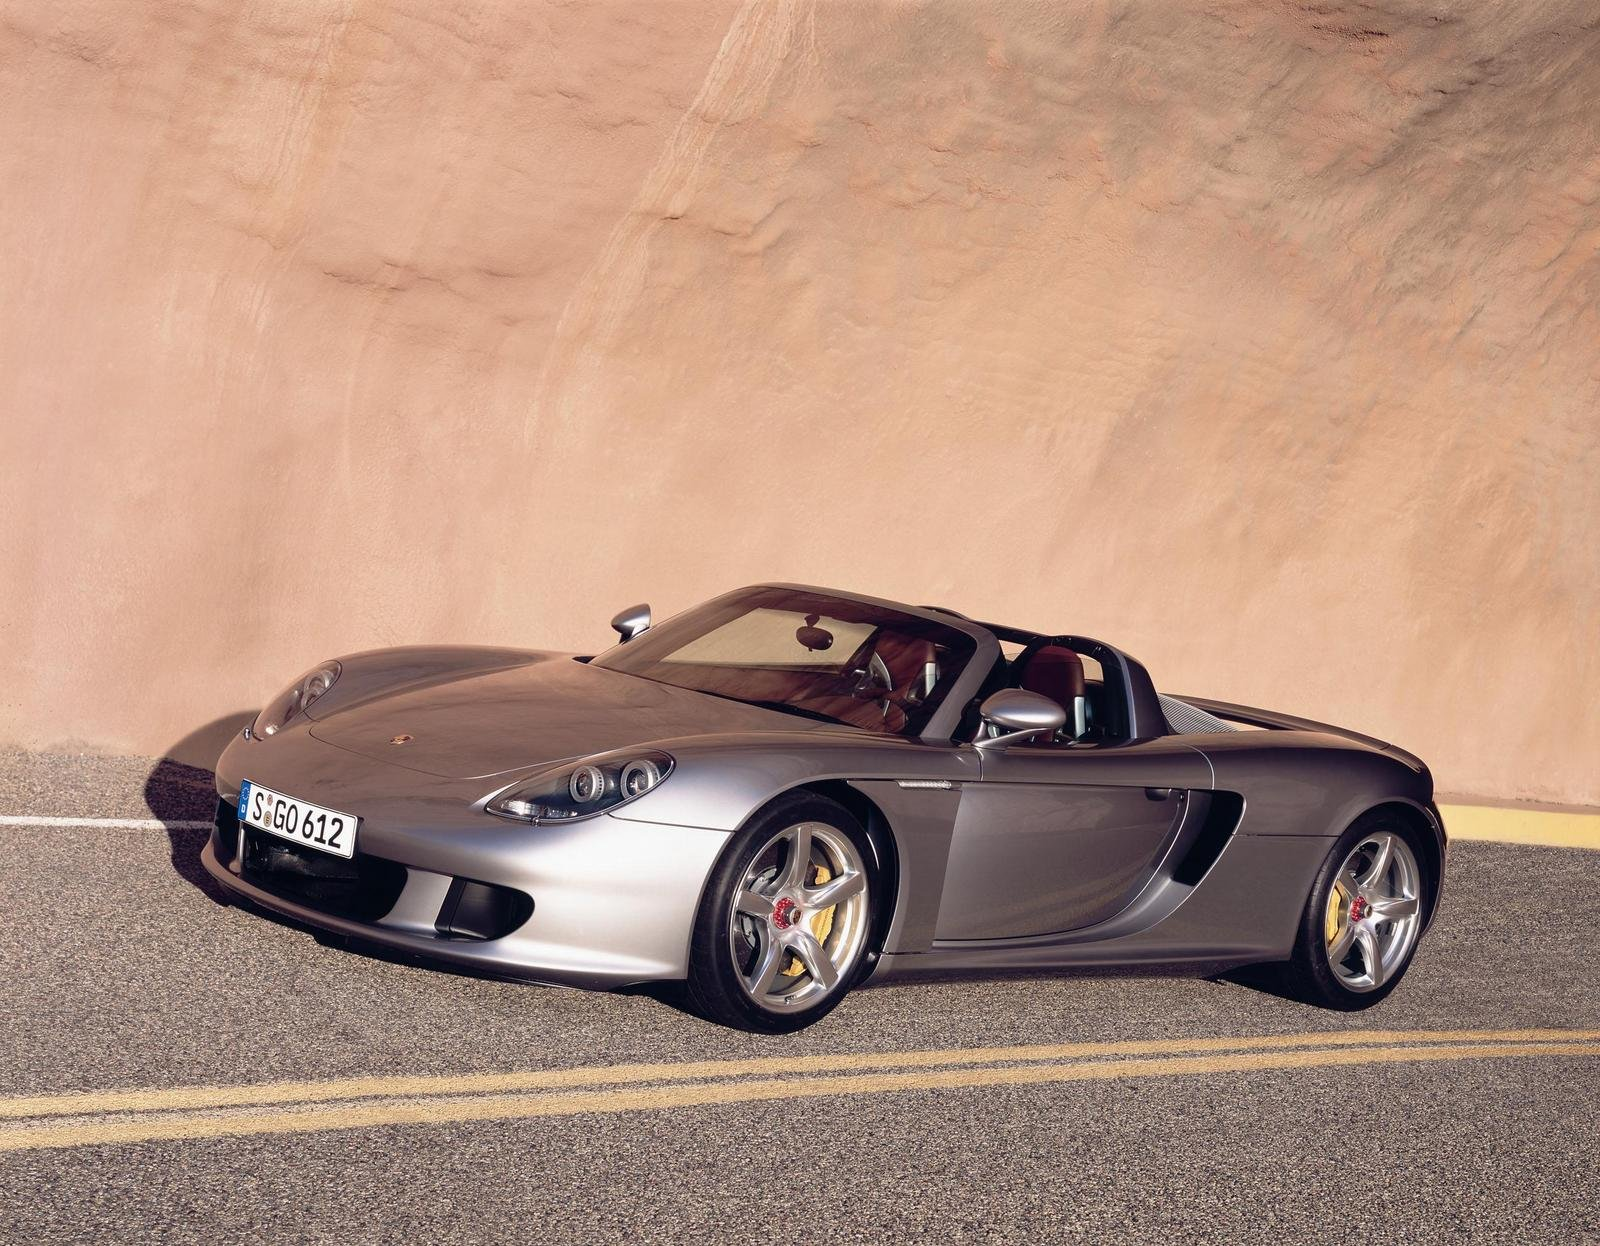 2004 2006 porsche carrera gt history picture 57470 car review top speed. Black Bedroom Furniture Sets. Home Design Ideas